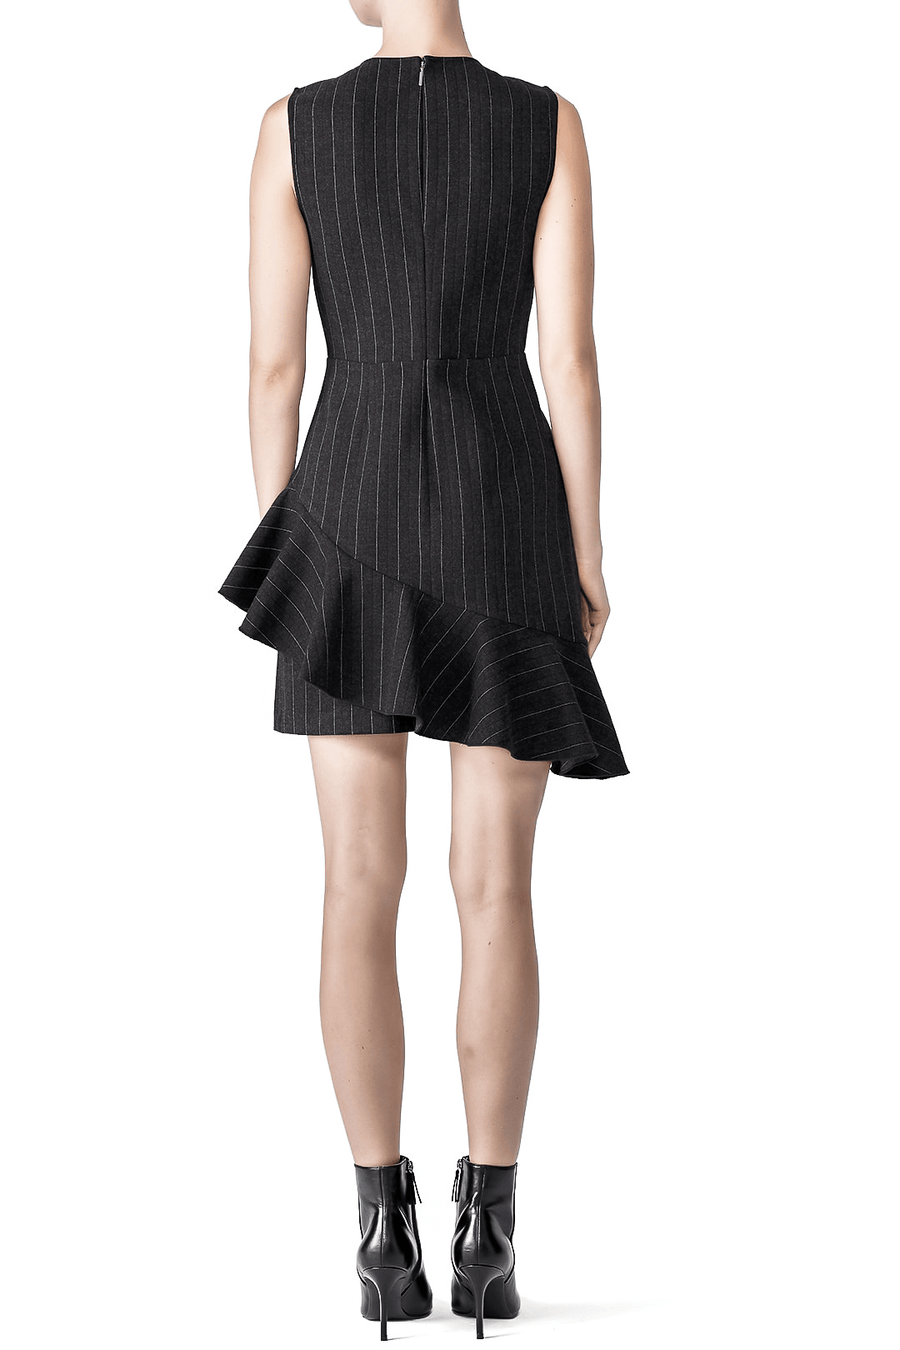 BETTIE BLACK PINSTRIPE SLEEVELESS RUFFLE DRESS